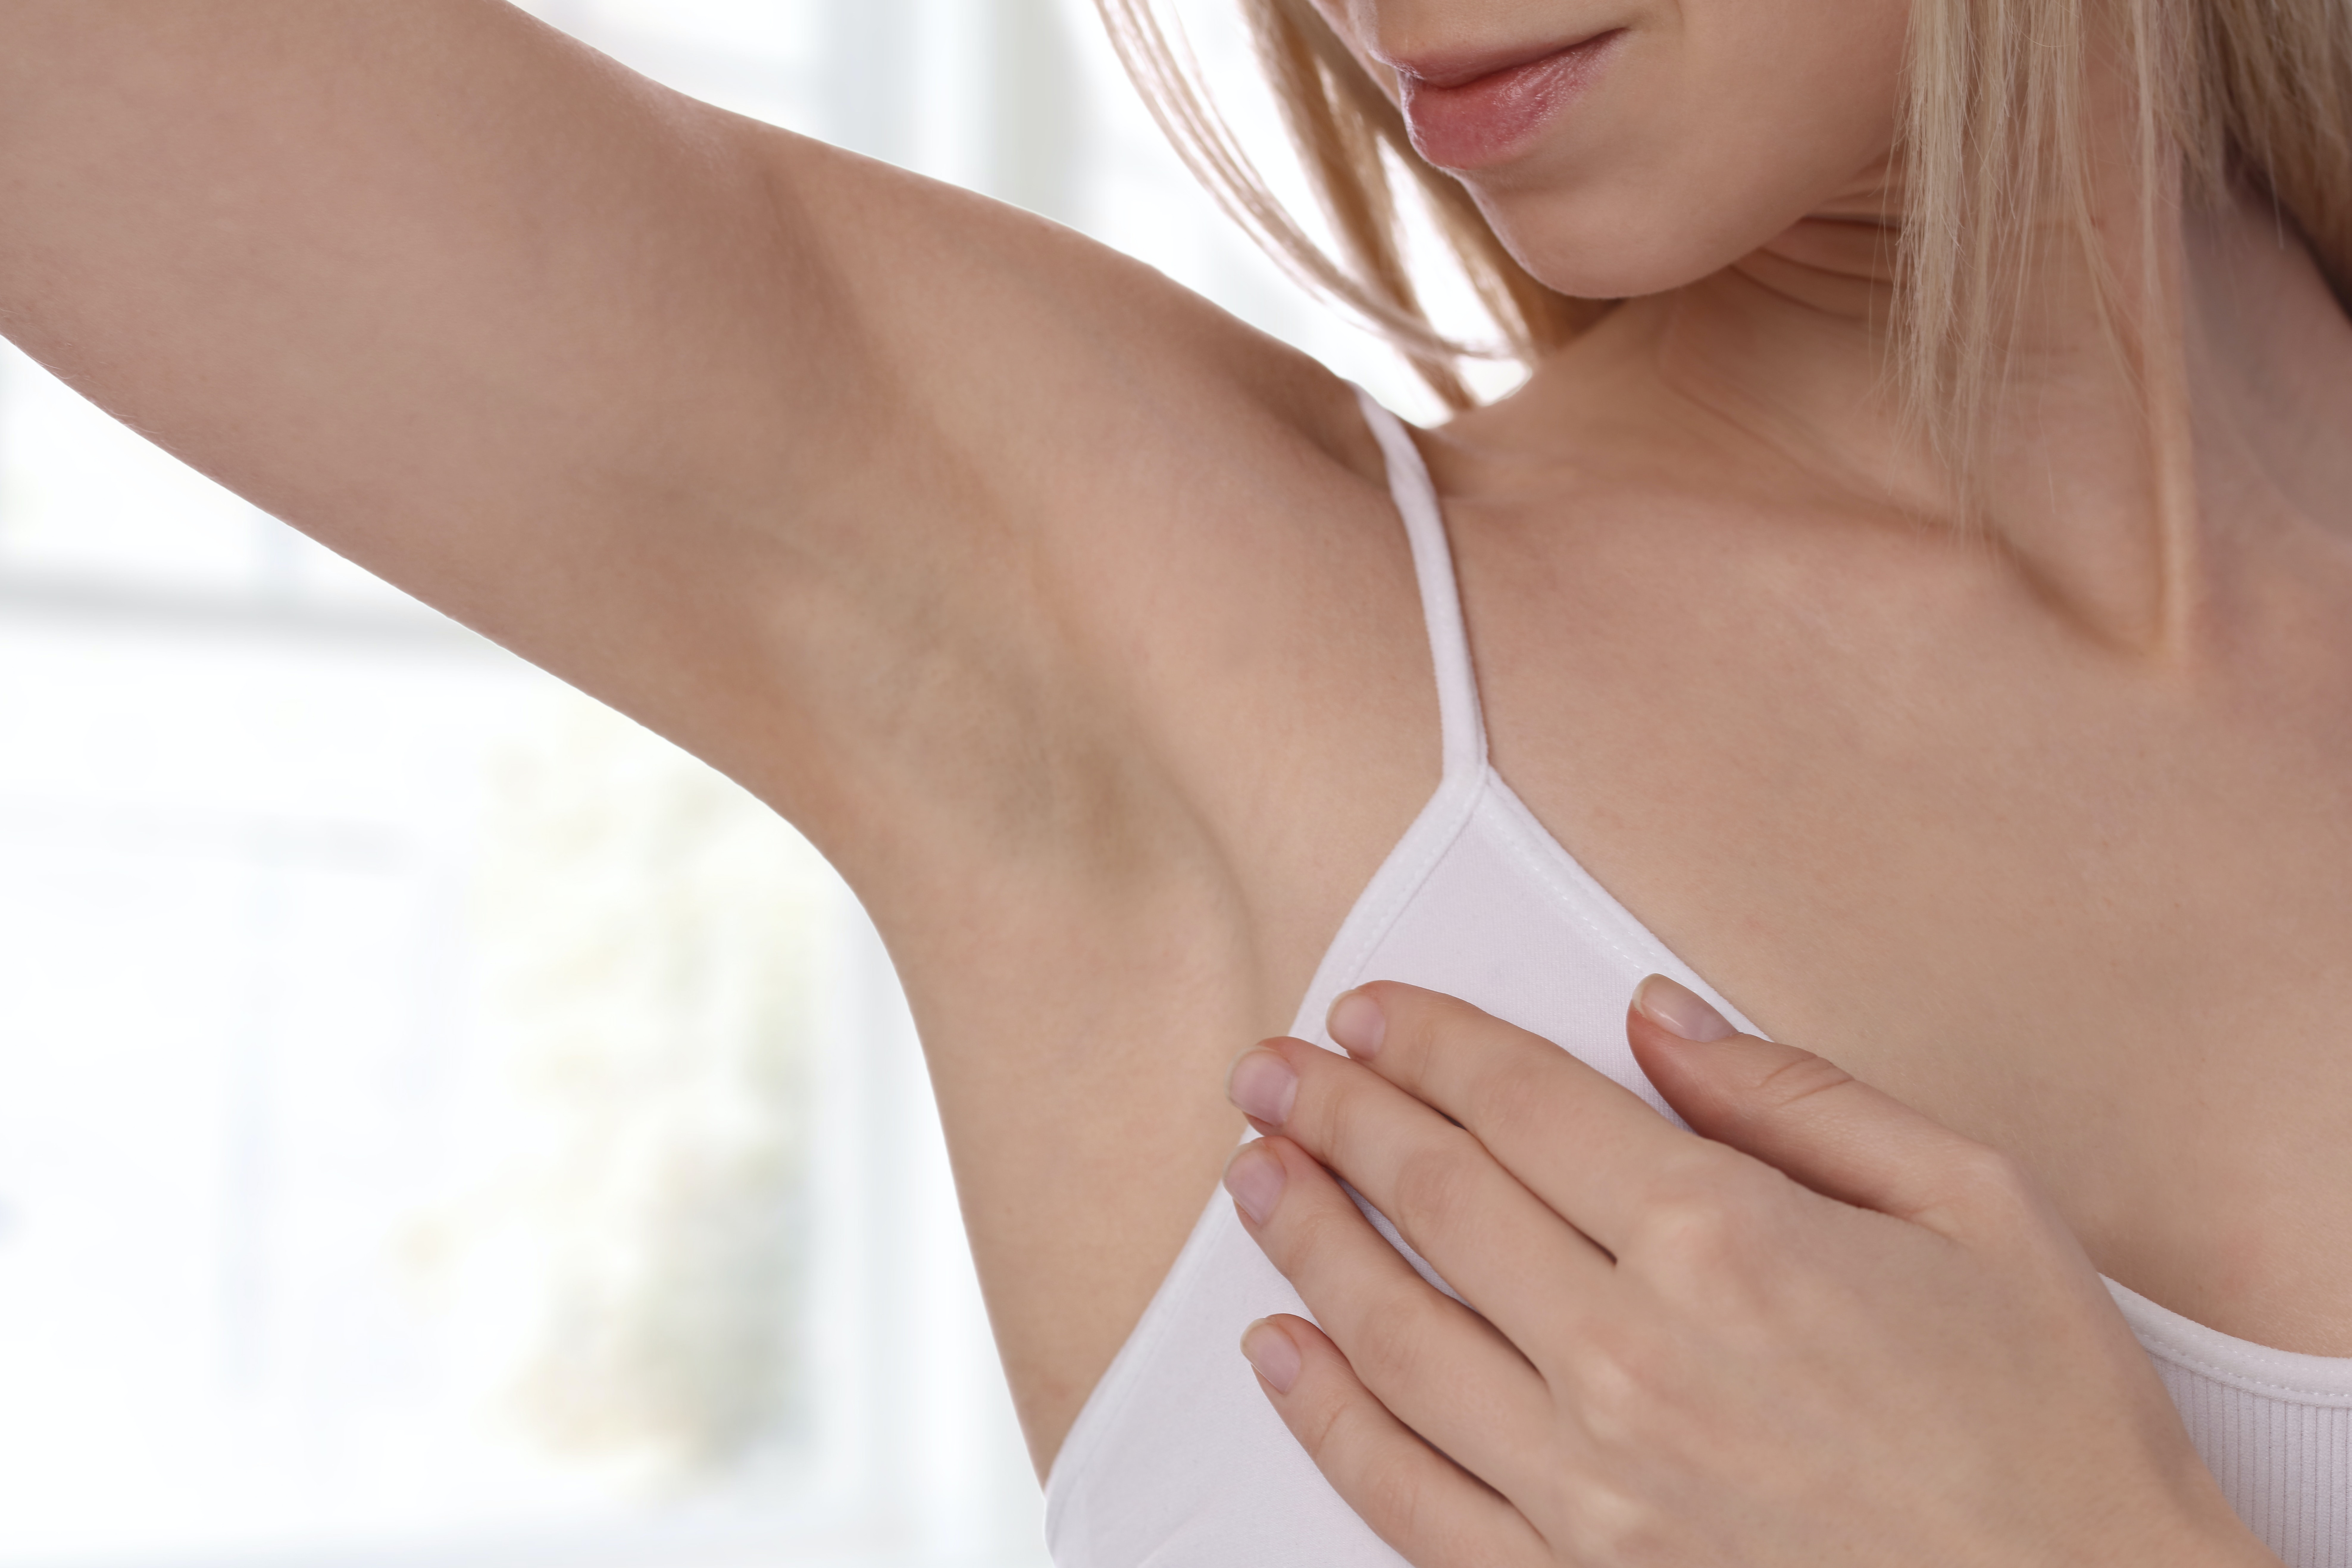 What should I do if my armpits sweat